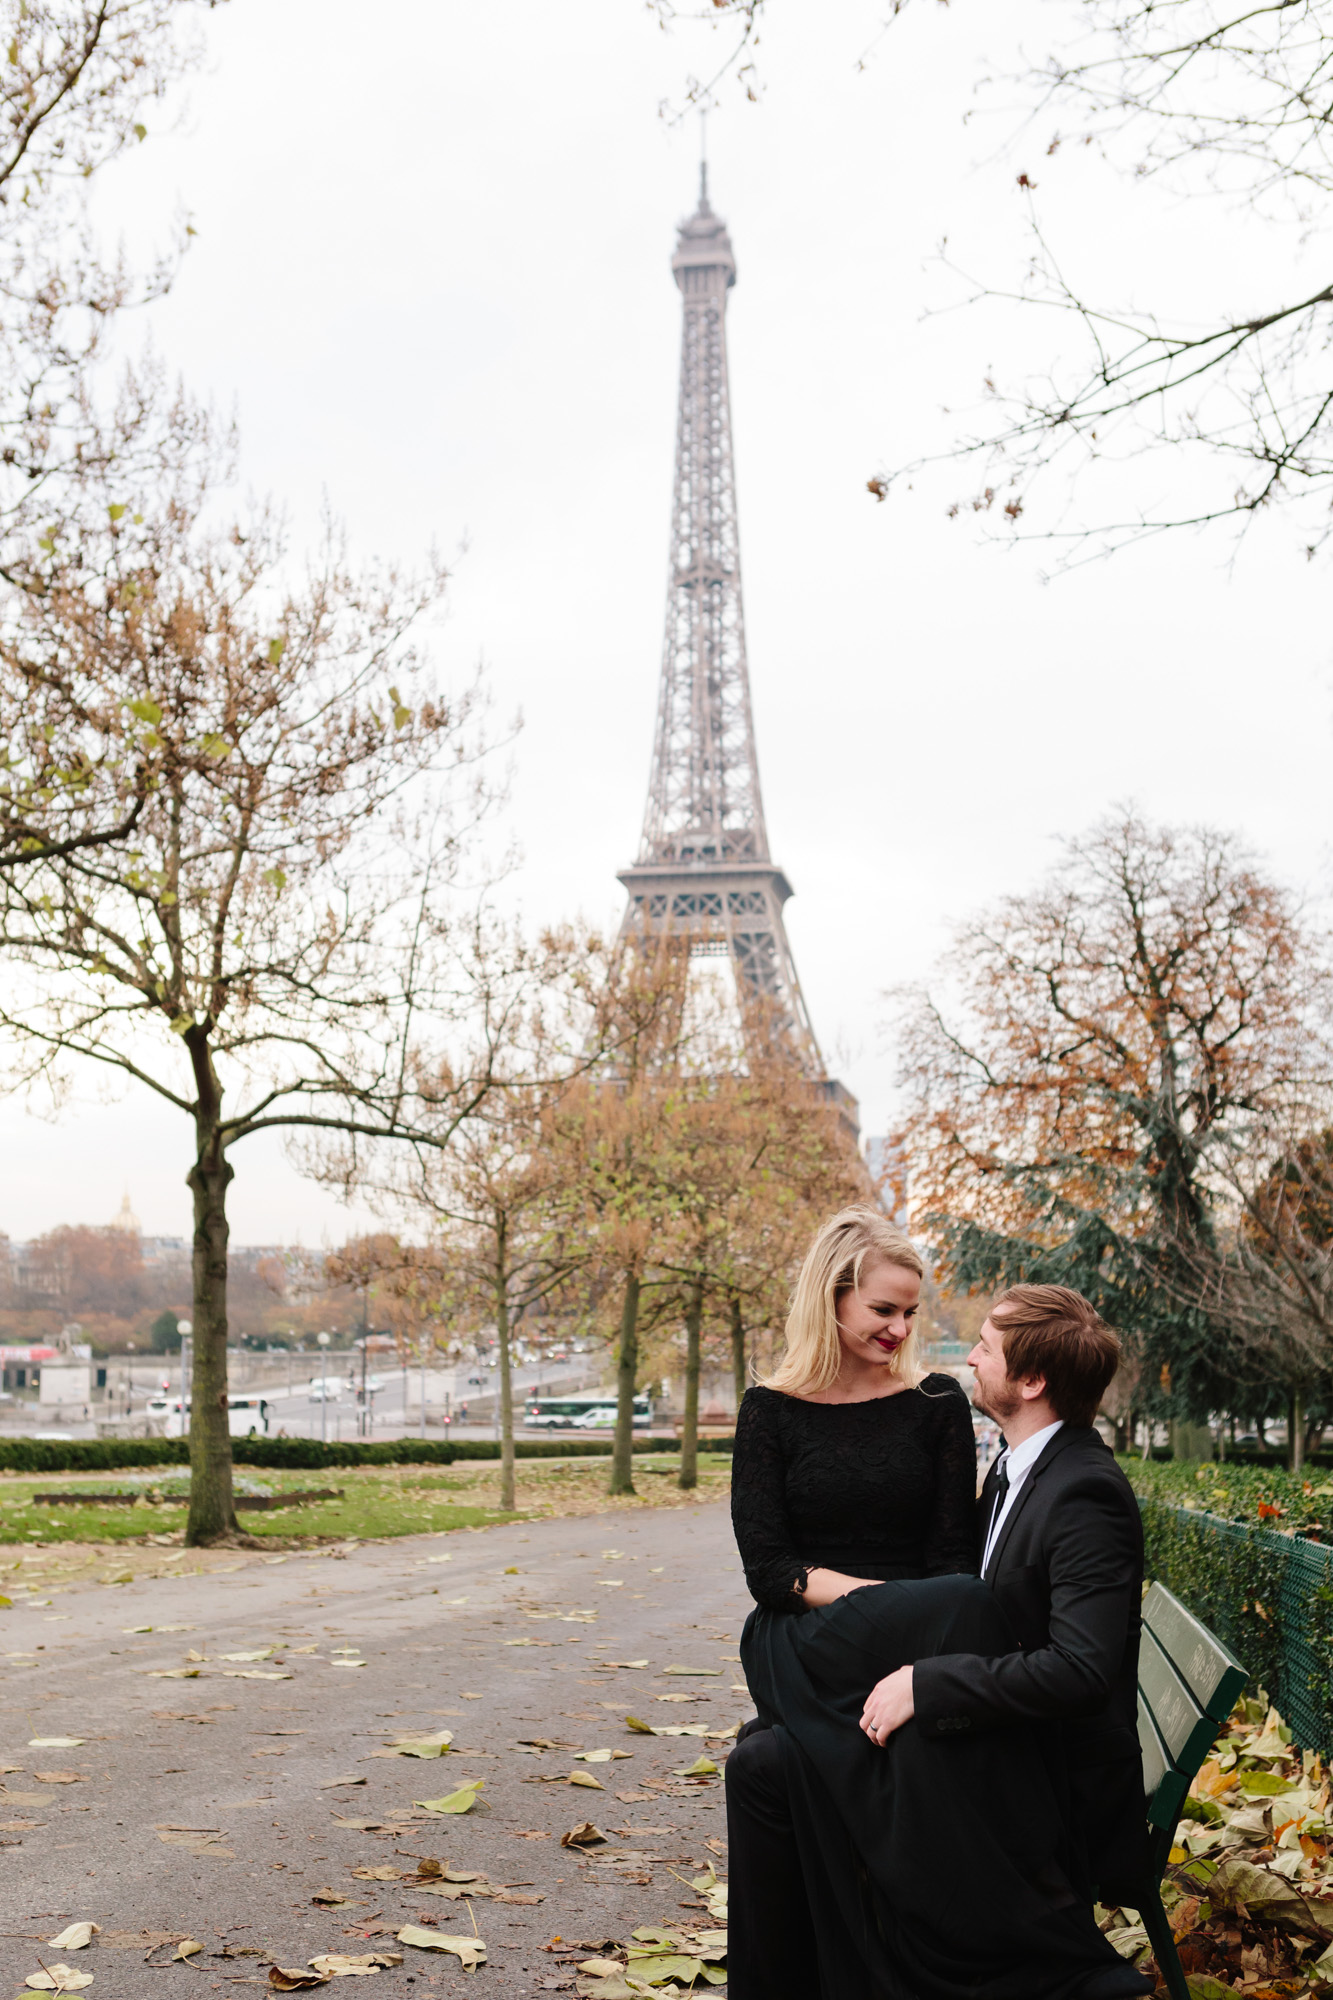 Couple engagement session by the Eiffel Tower captured by Photographer in Paris Federico Guendel